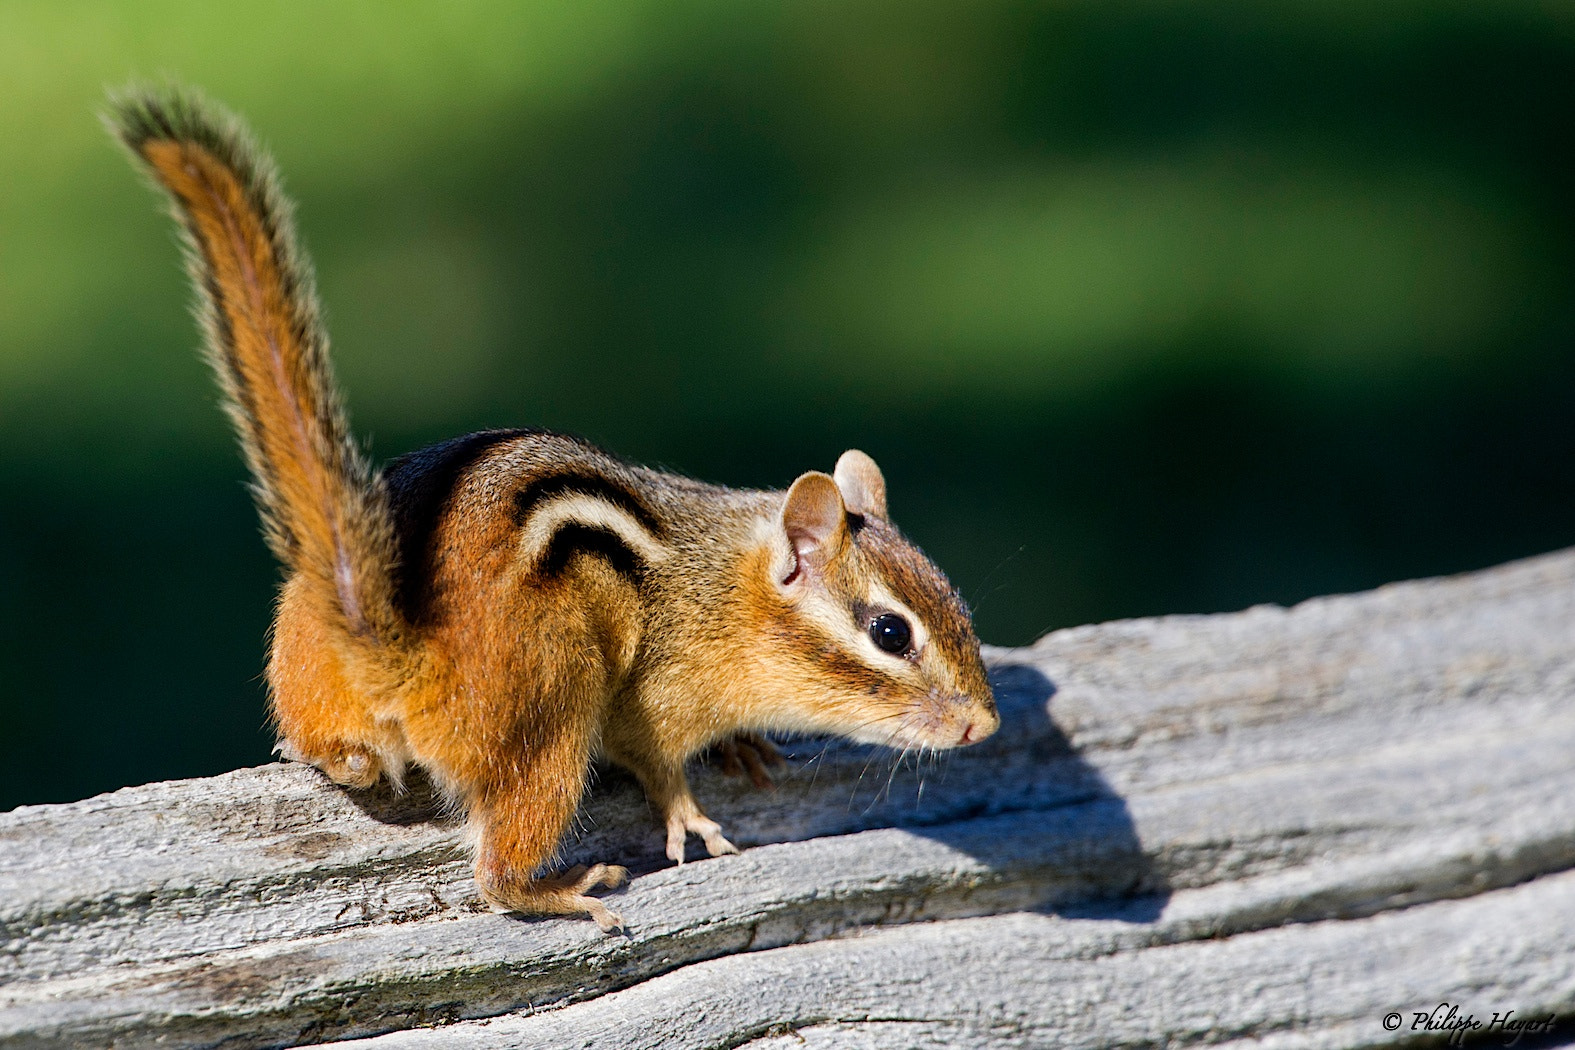 Photograph Eastern chipmunk by Philippe Hayart on 500px